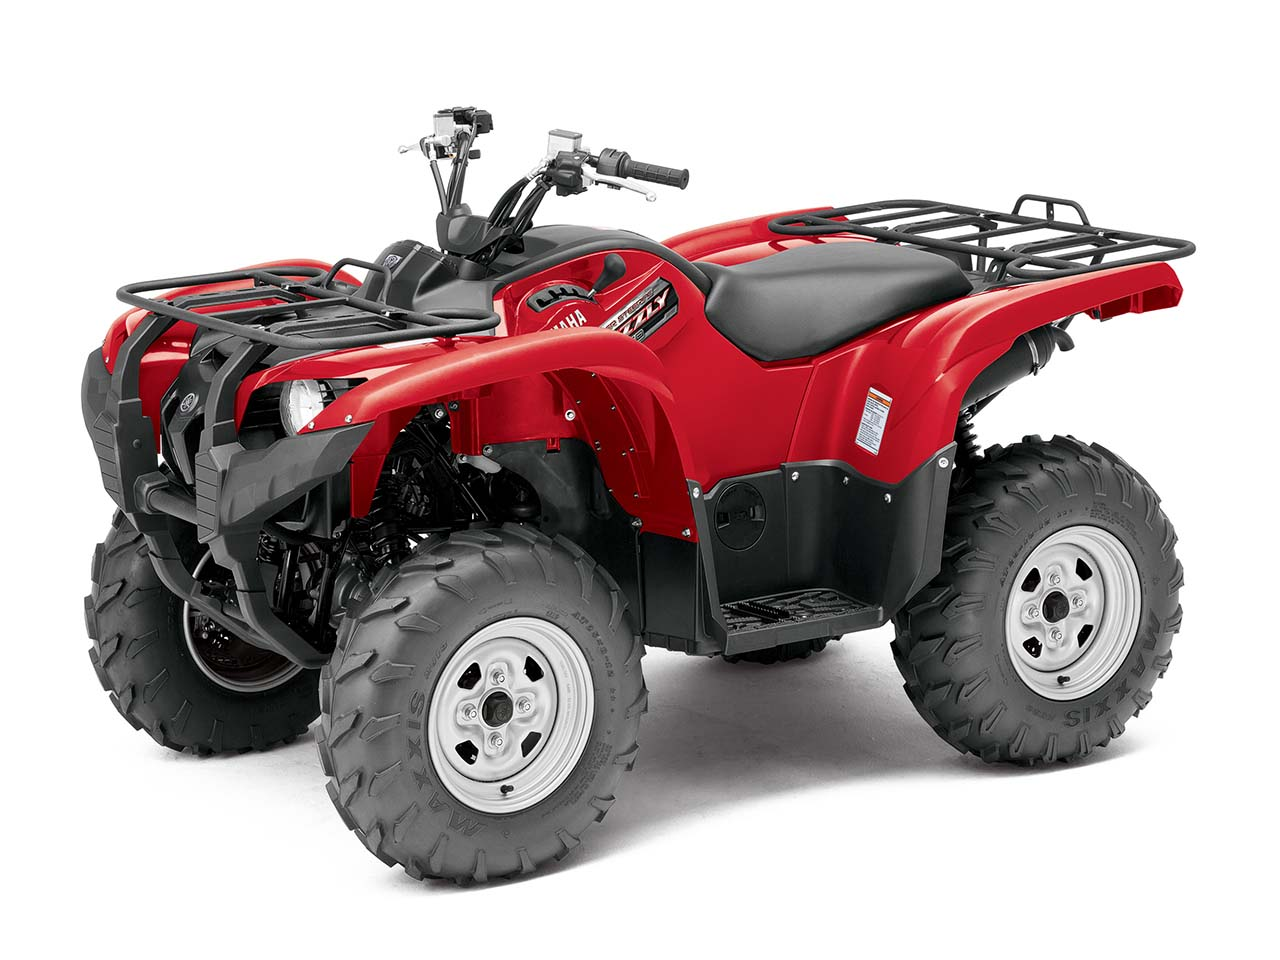 2012 Yamaha Motor Usa Producing Additional 2013 Utility